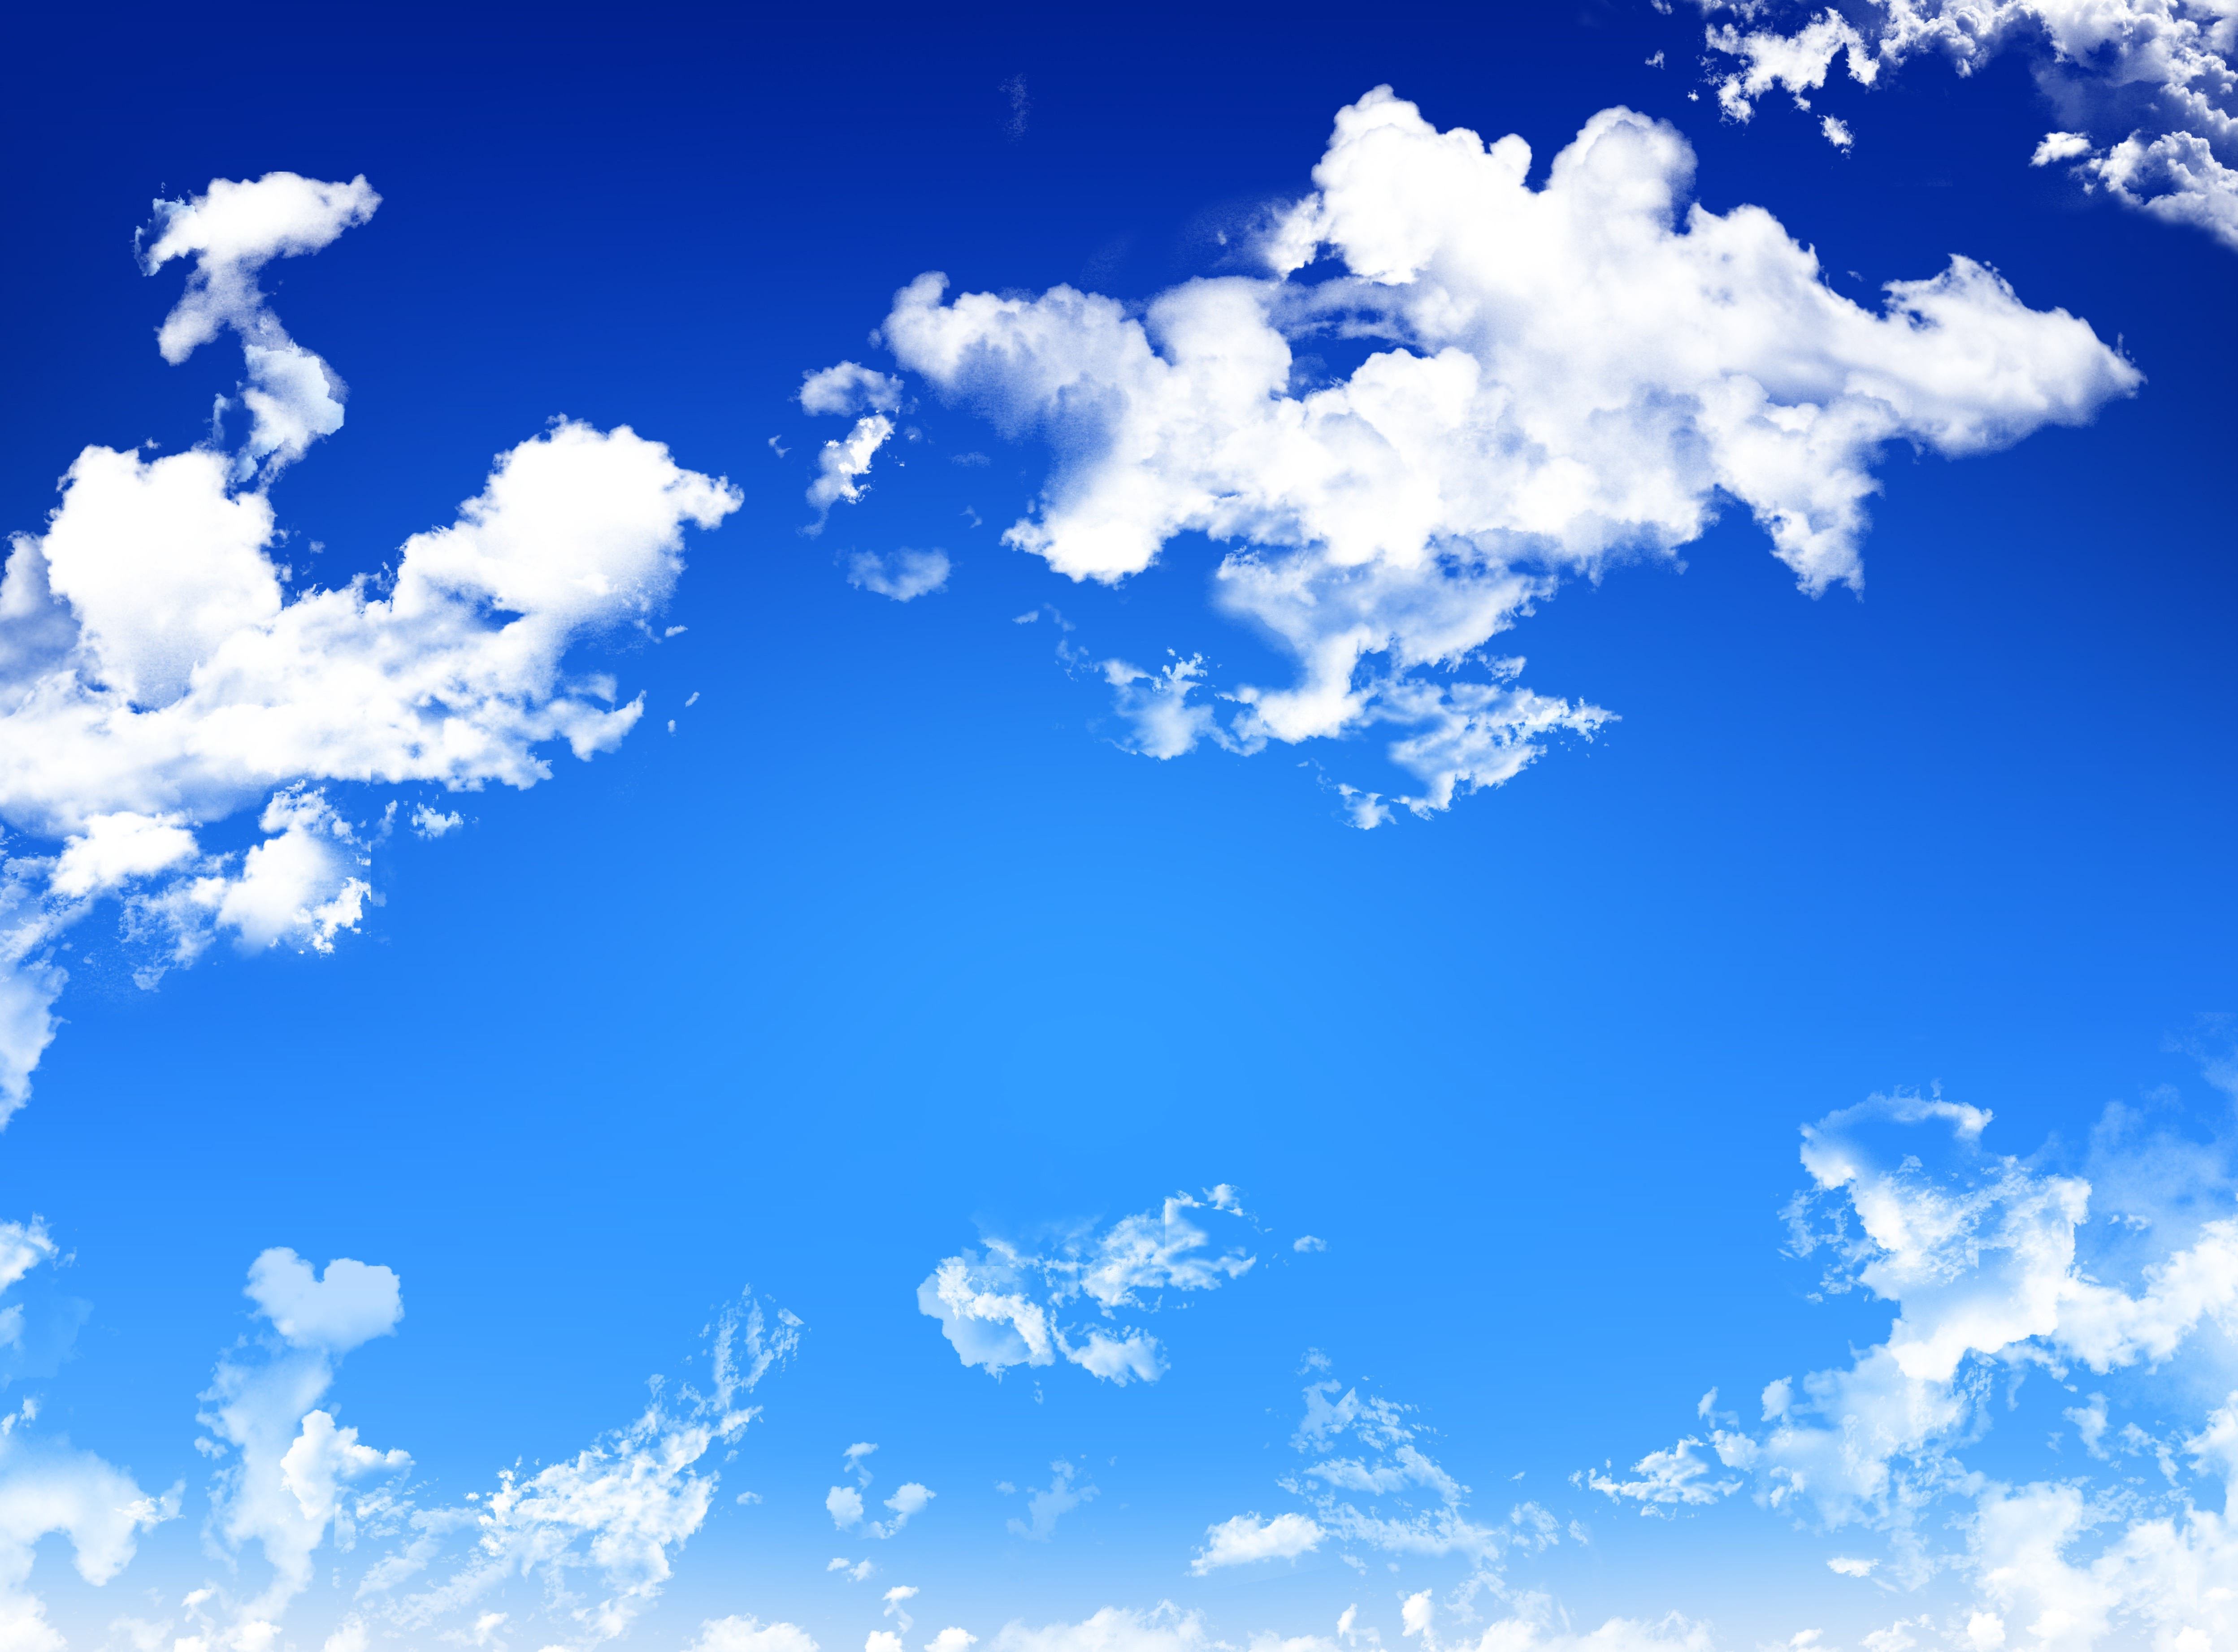 Blue Sky with White Clouds – tHiNk TwIcE